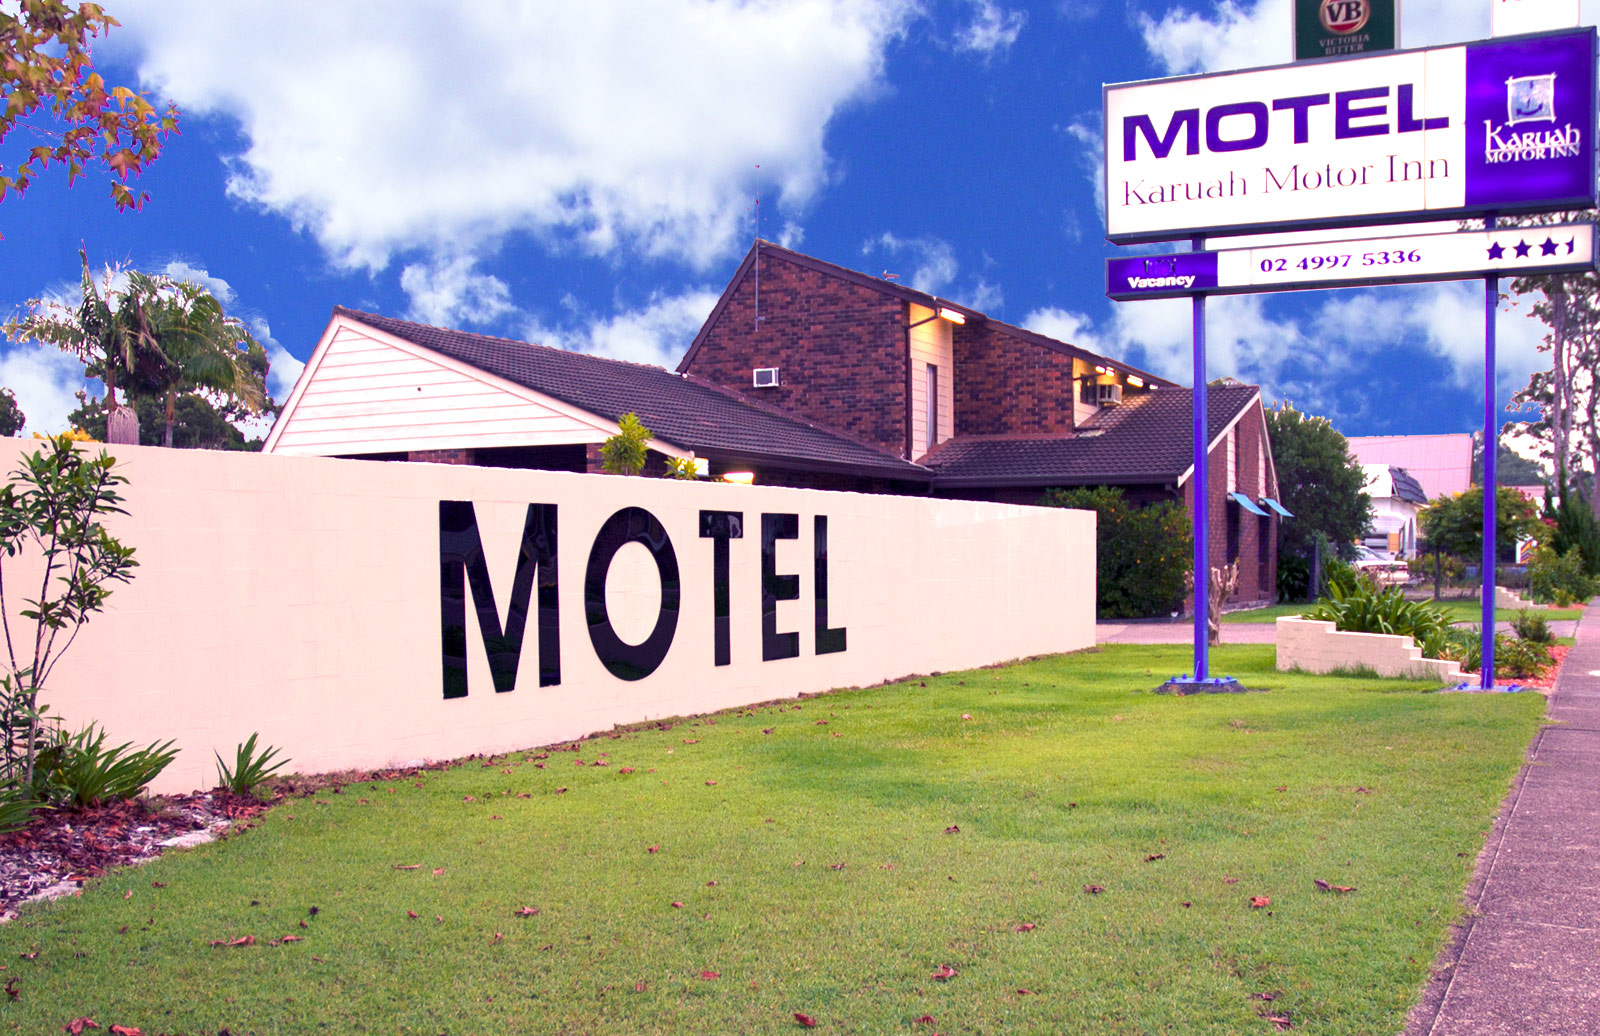 Karuah motor inn the best in affordable accomodation for Long lake motor inn